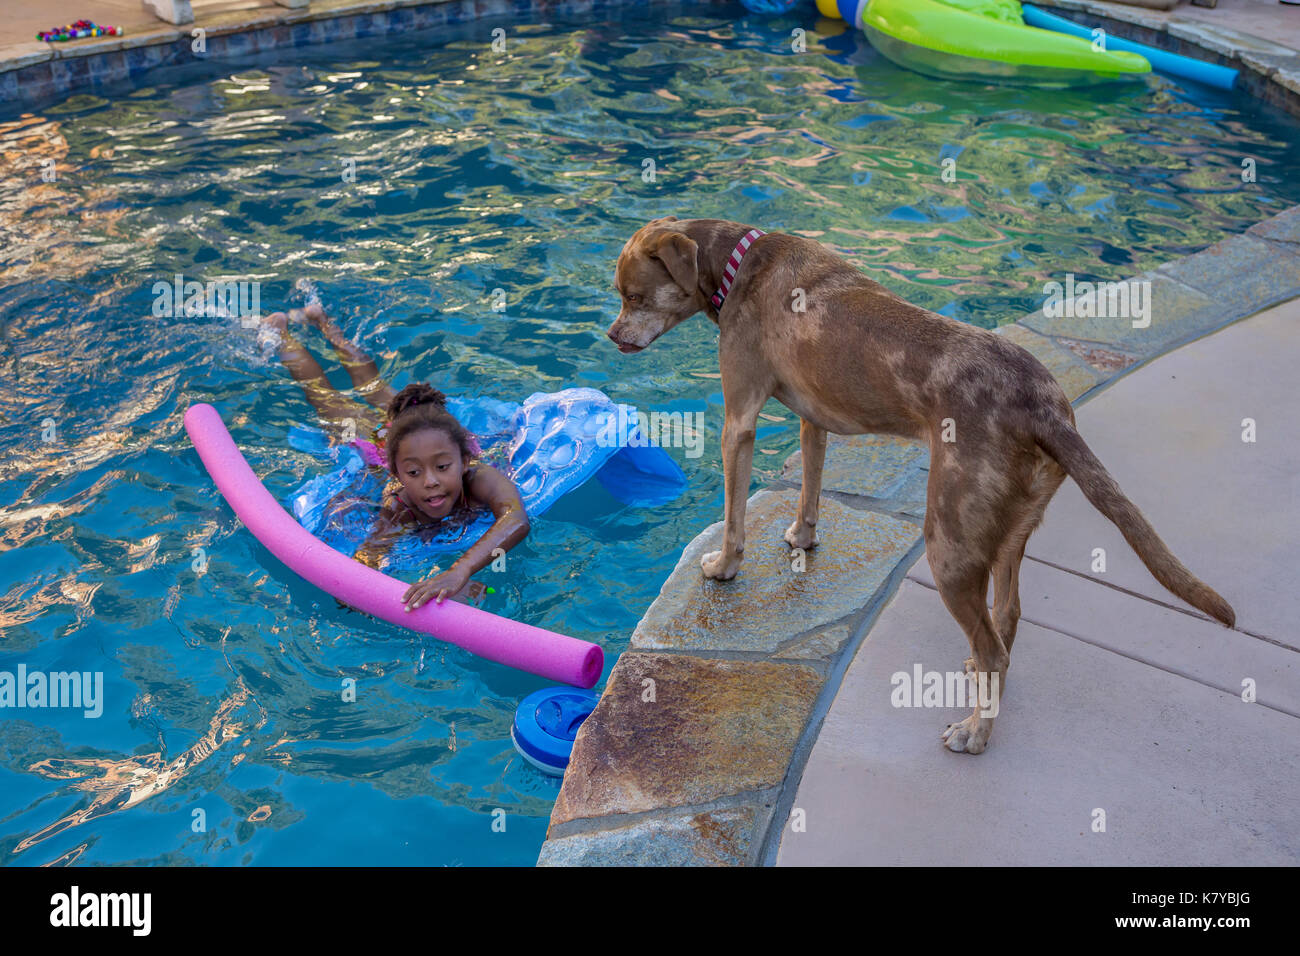 mix-breed dog looking at girl, African-American girl, child, swimmer, girl swimming, swimming, freshwater swimming pool, Castro Valley, California - Stock Image